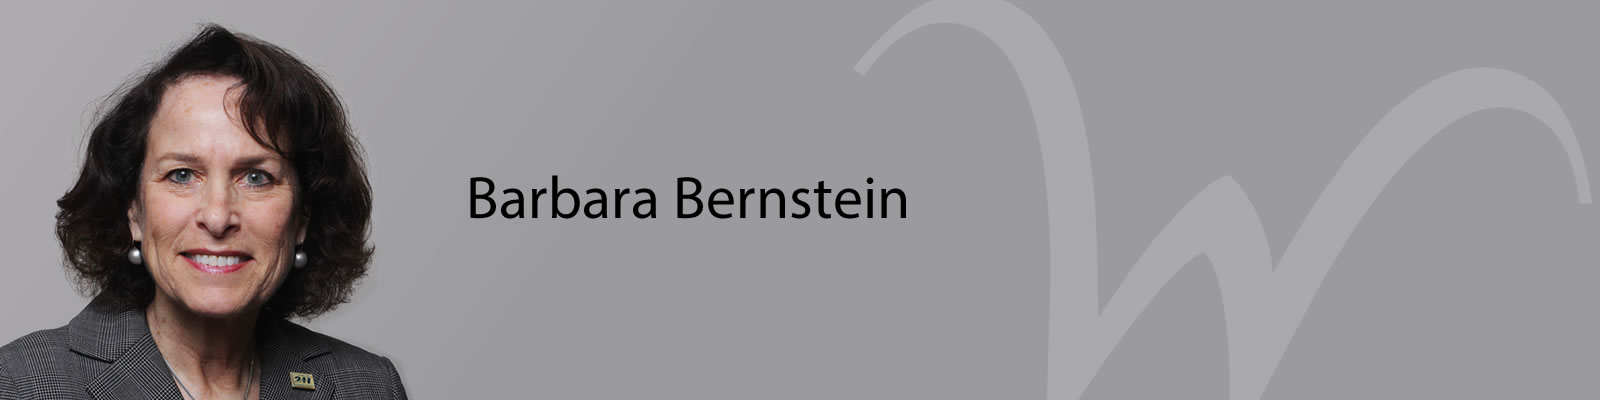 Image of Barbara Bernstein